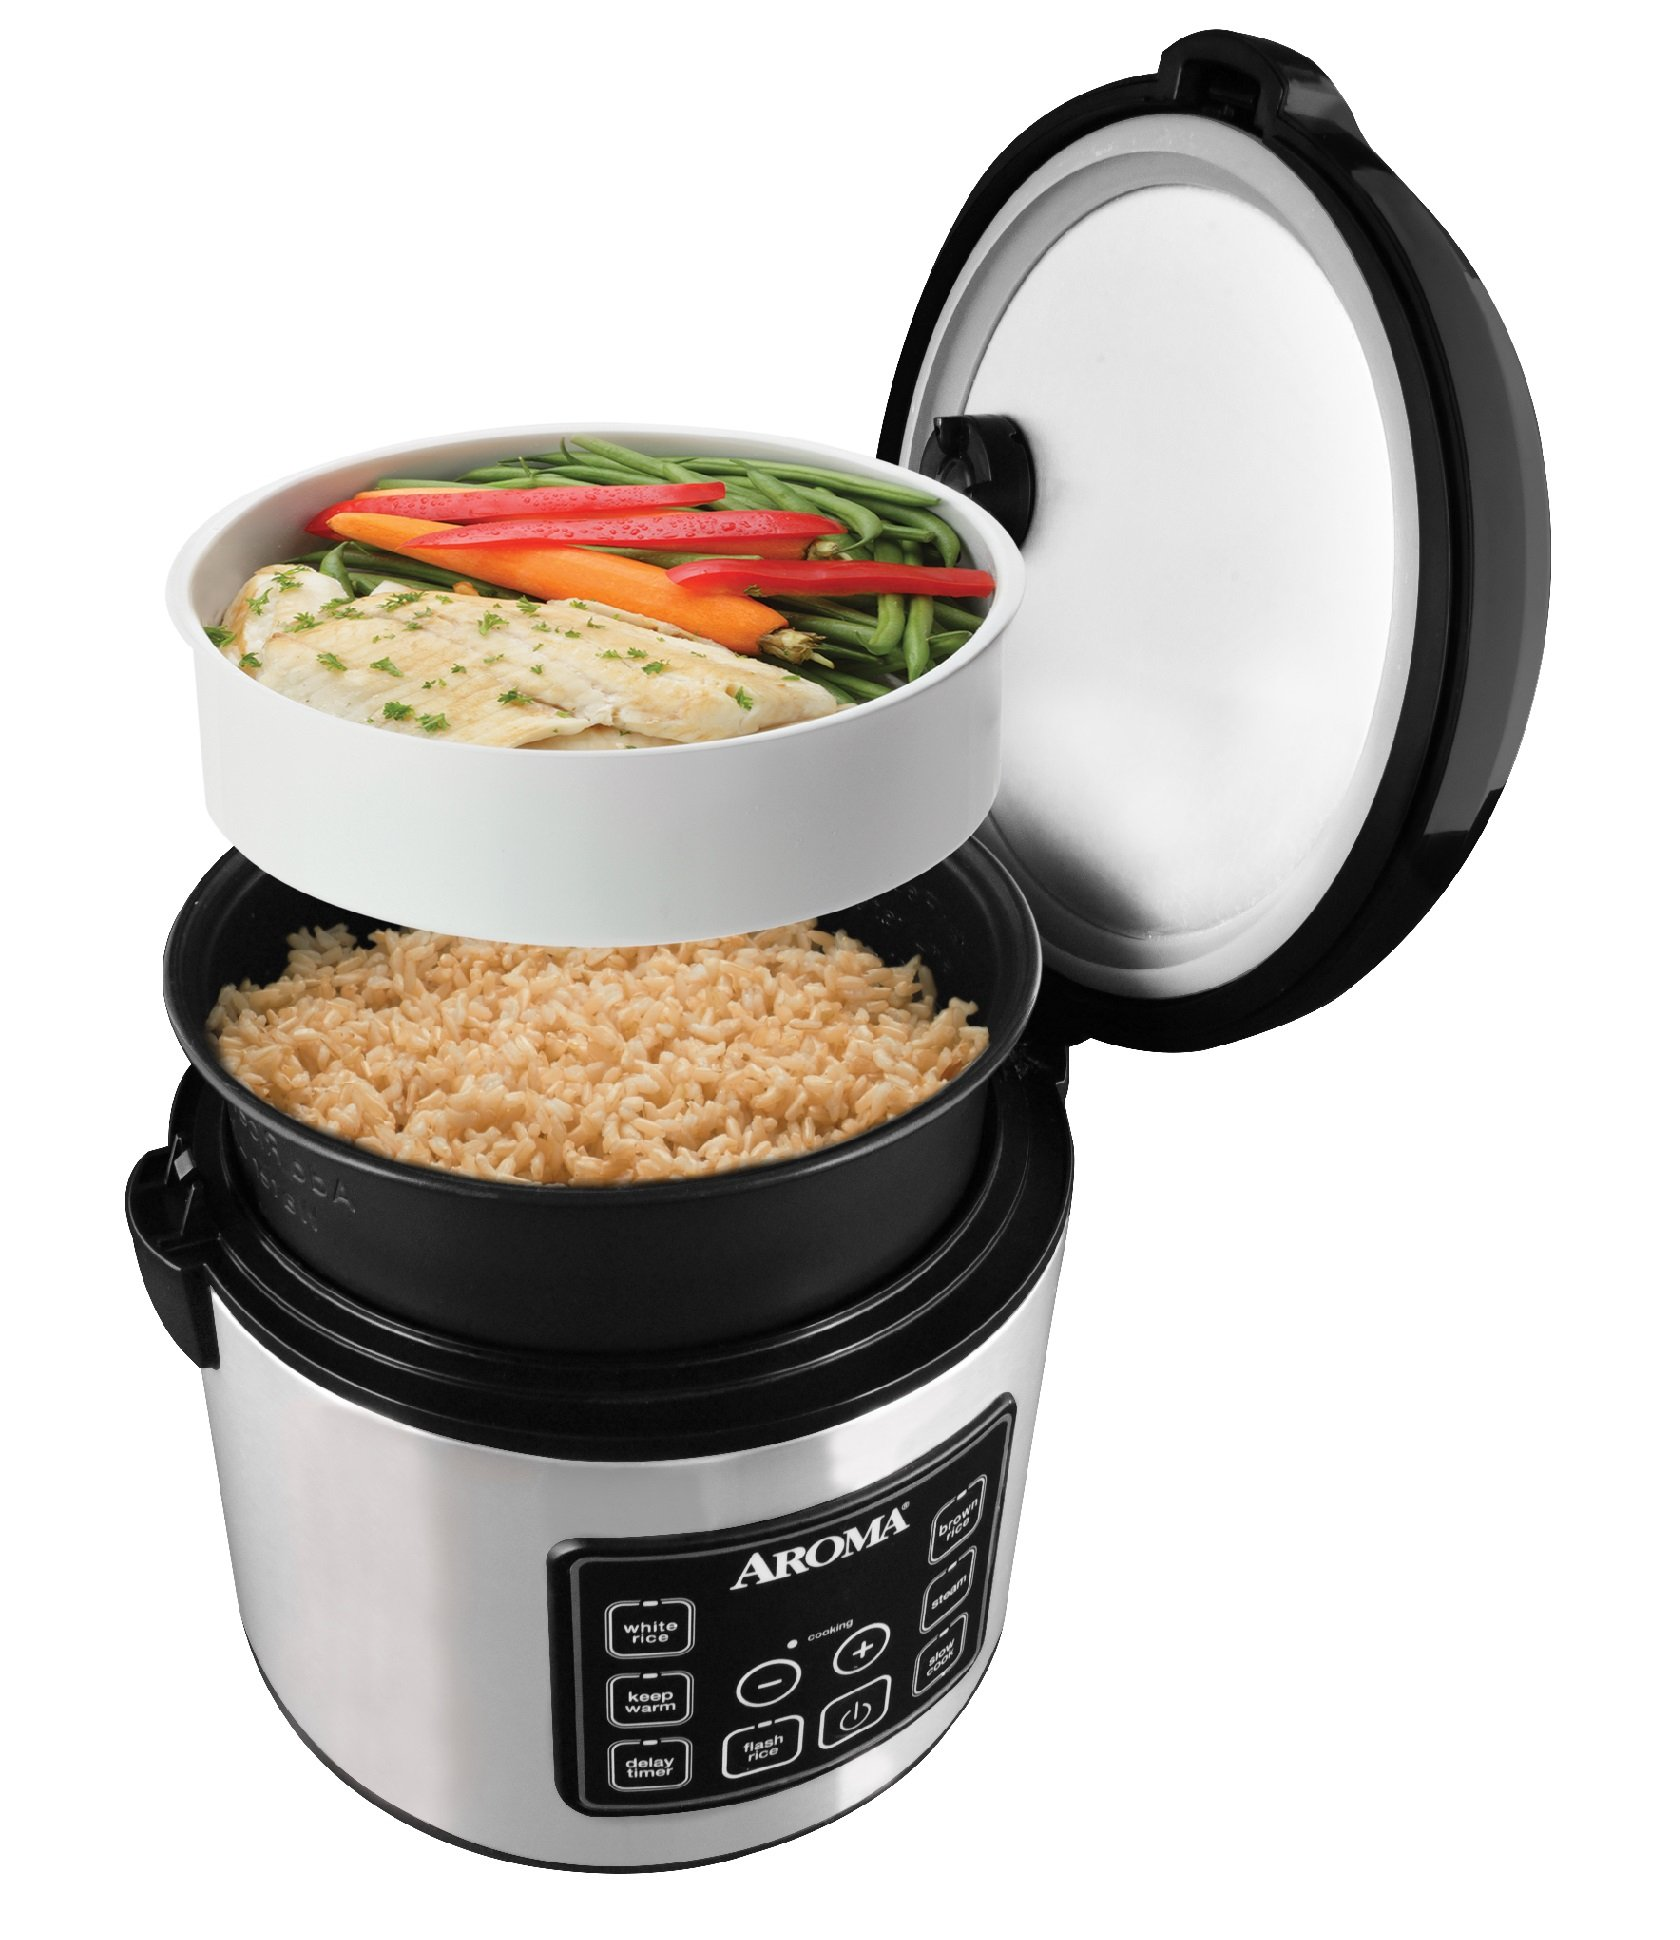 Aroma Housewares 20 Cup Cooked (10 cup uncooked) Digital Rice Cooker, Slow Cooker, Food Steamer, SS Exterior (ARC-150SB) by Aroma Housewares (Image #7)